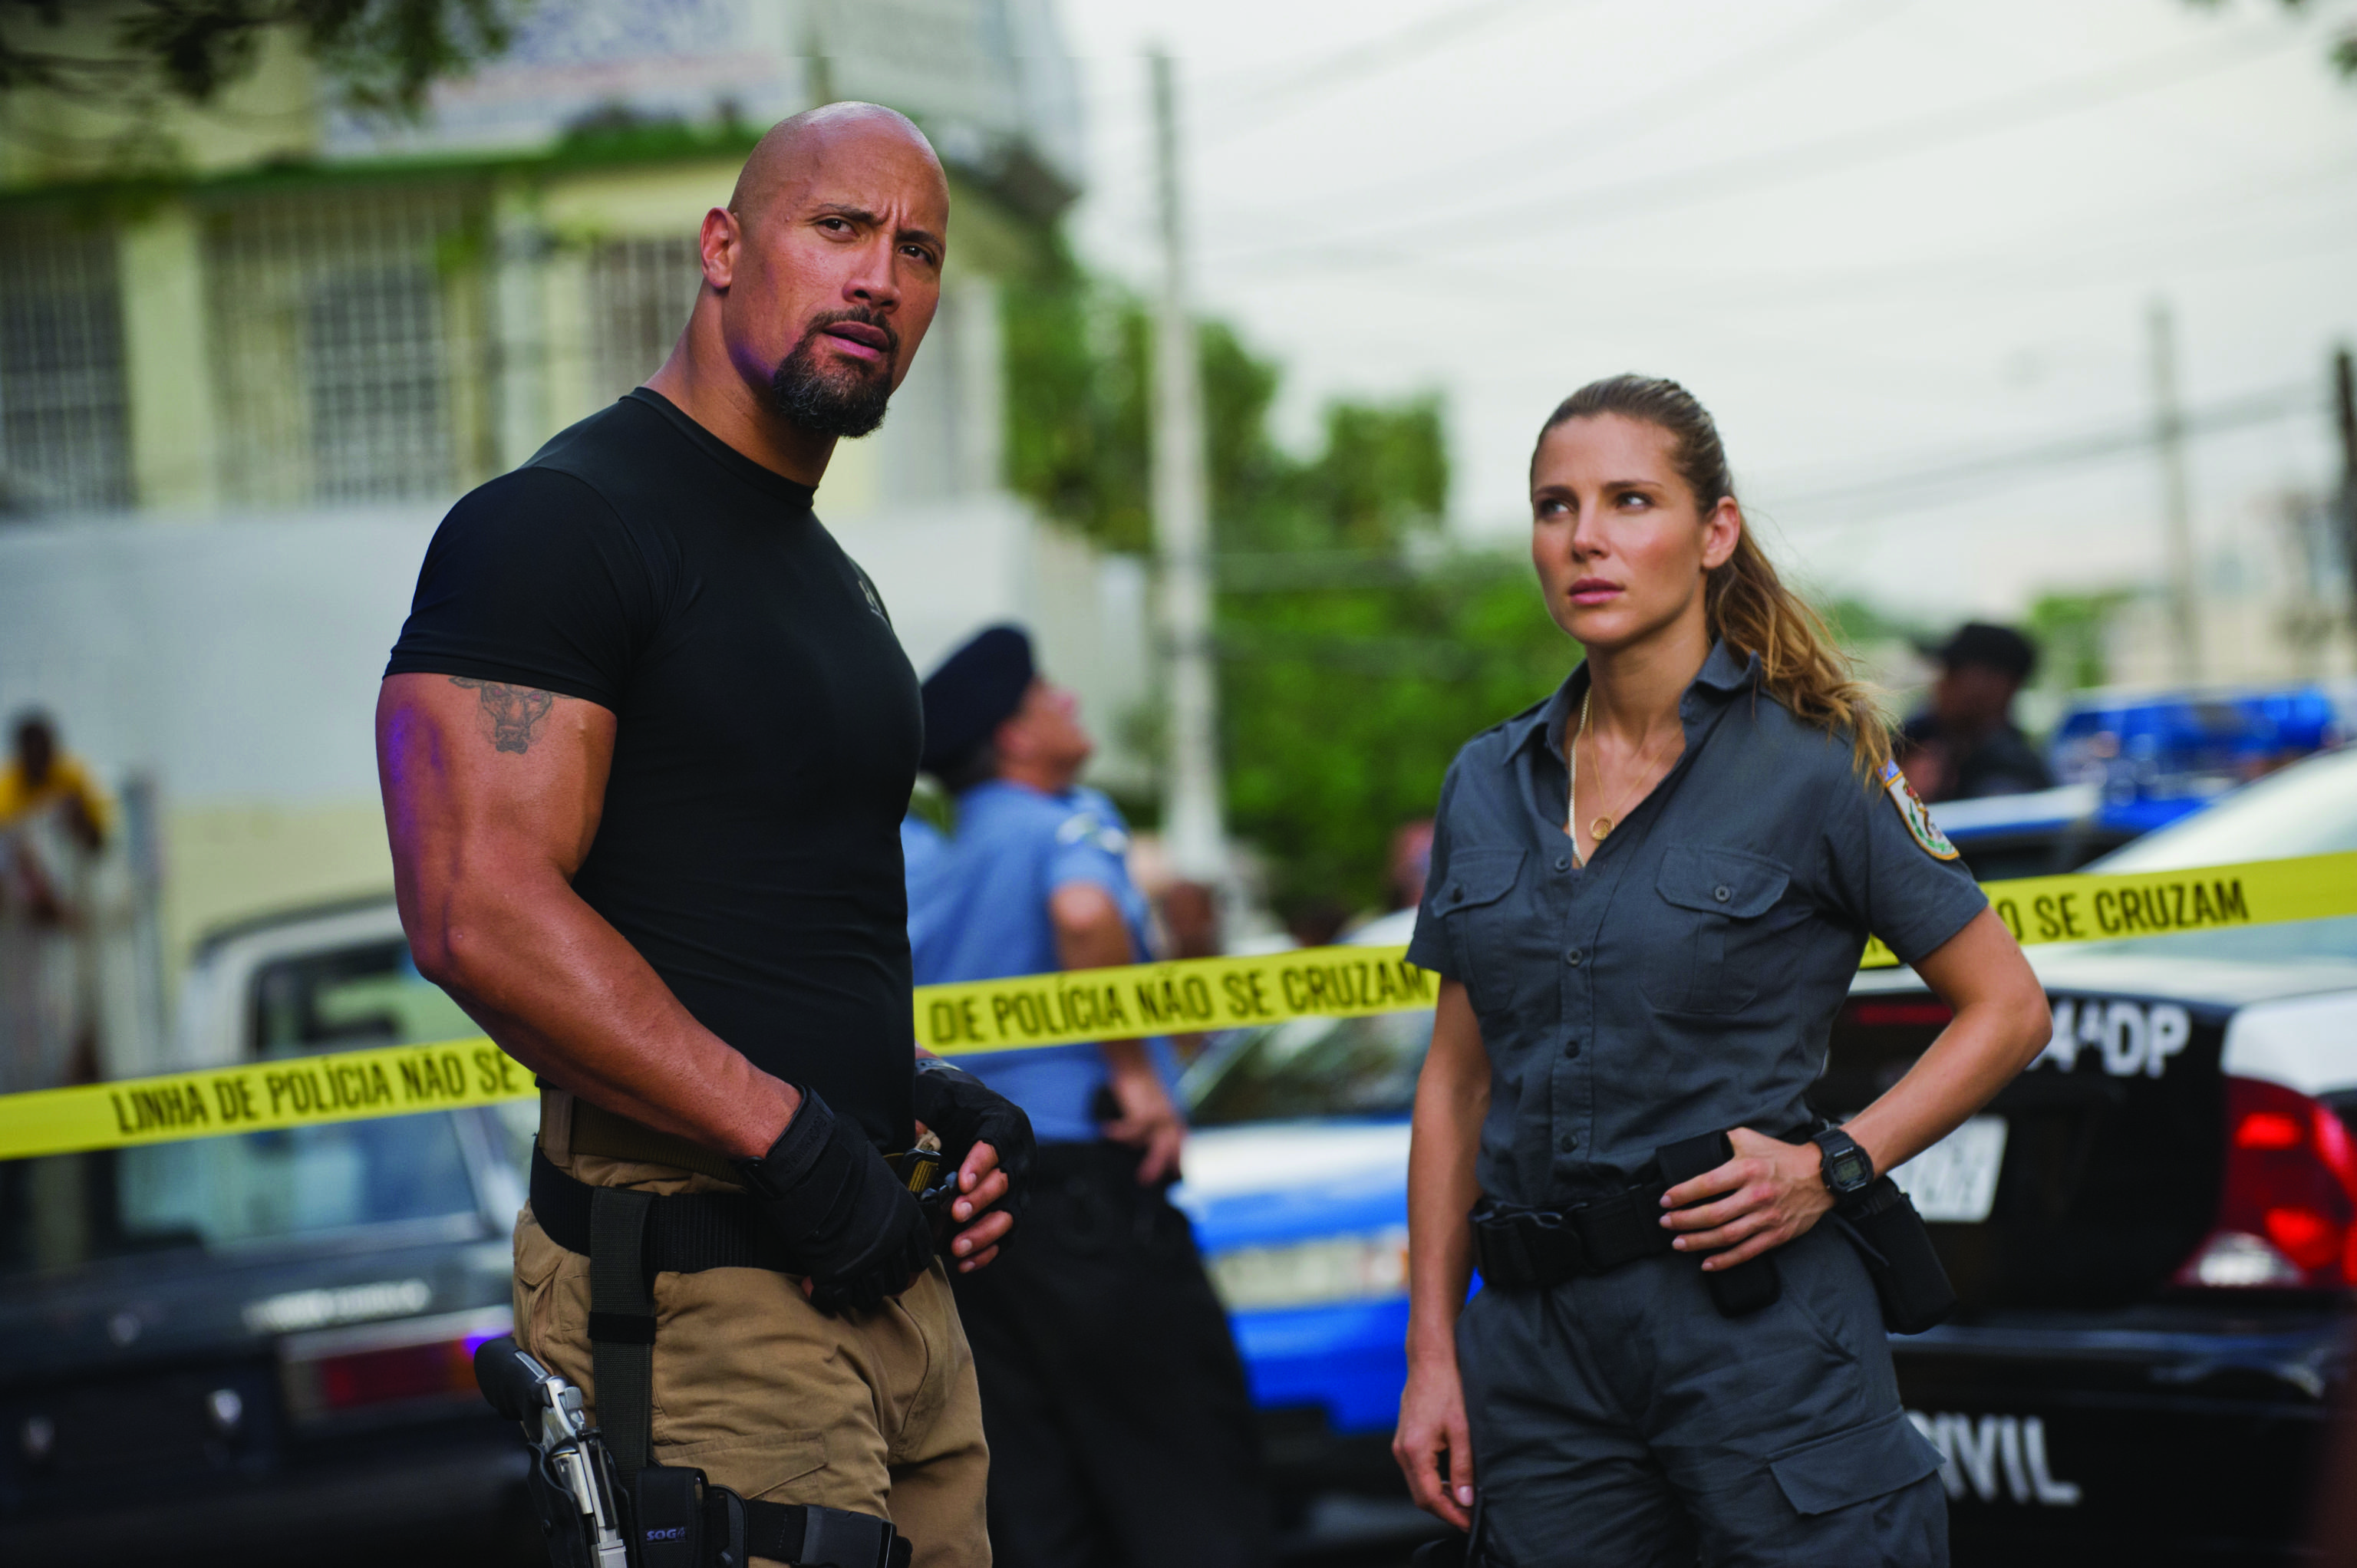 fast and furious, 13. When a DSS agent, Hobbs and his associate Elena - aims to arrest Dom and Brian. Instead, they end up aiding them.